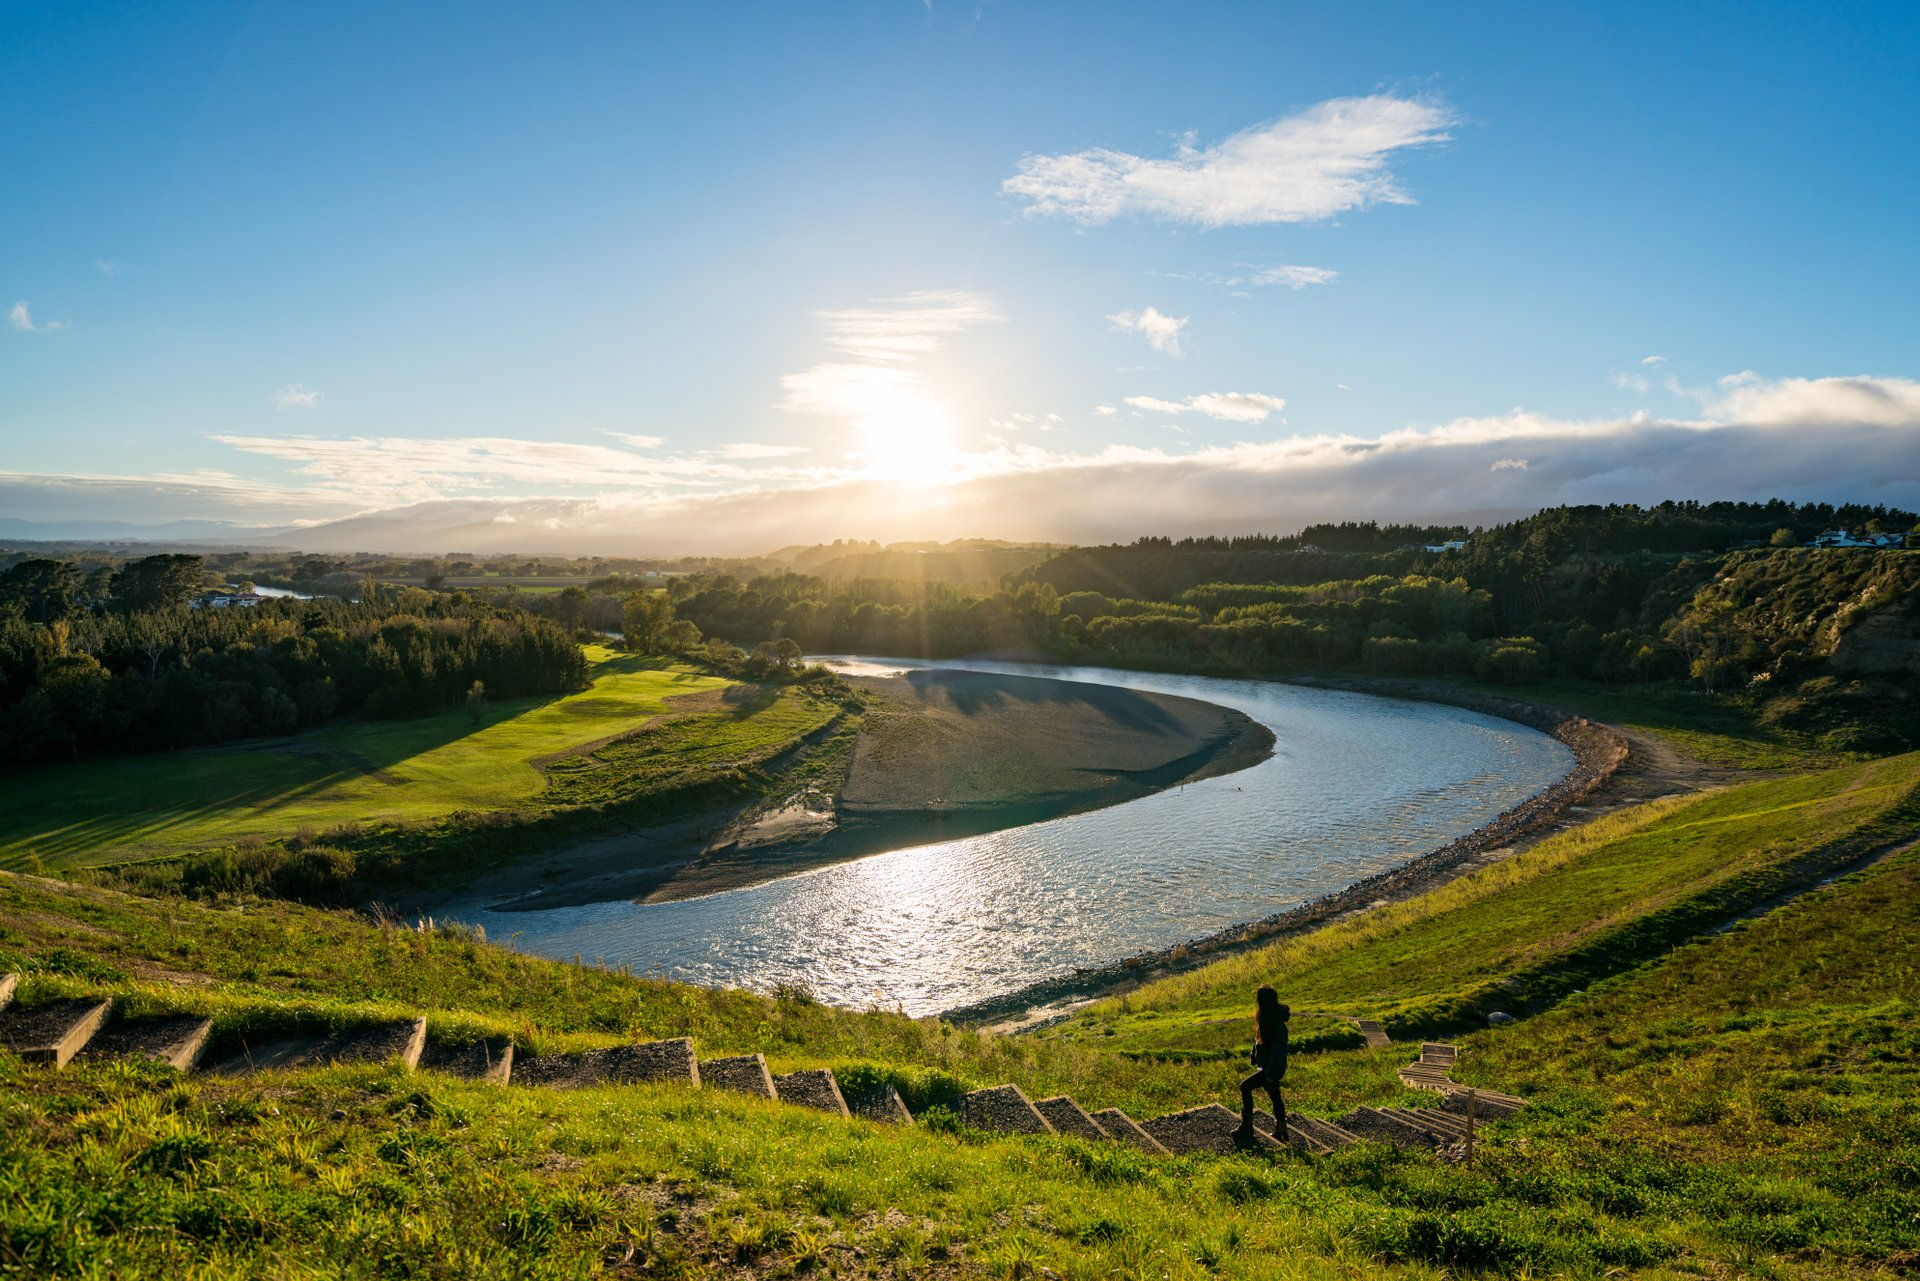 Palmerston North and Manawatū highlighted as a popular destination to visit